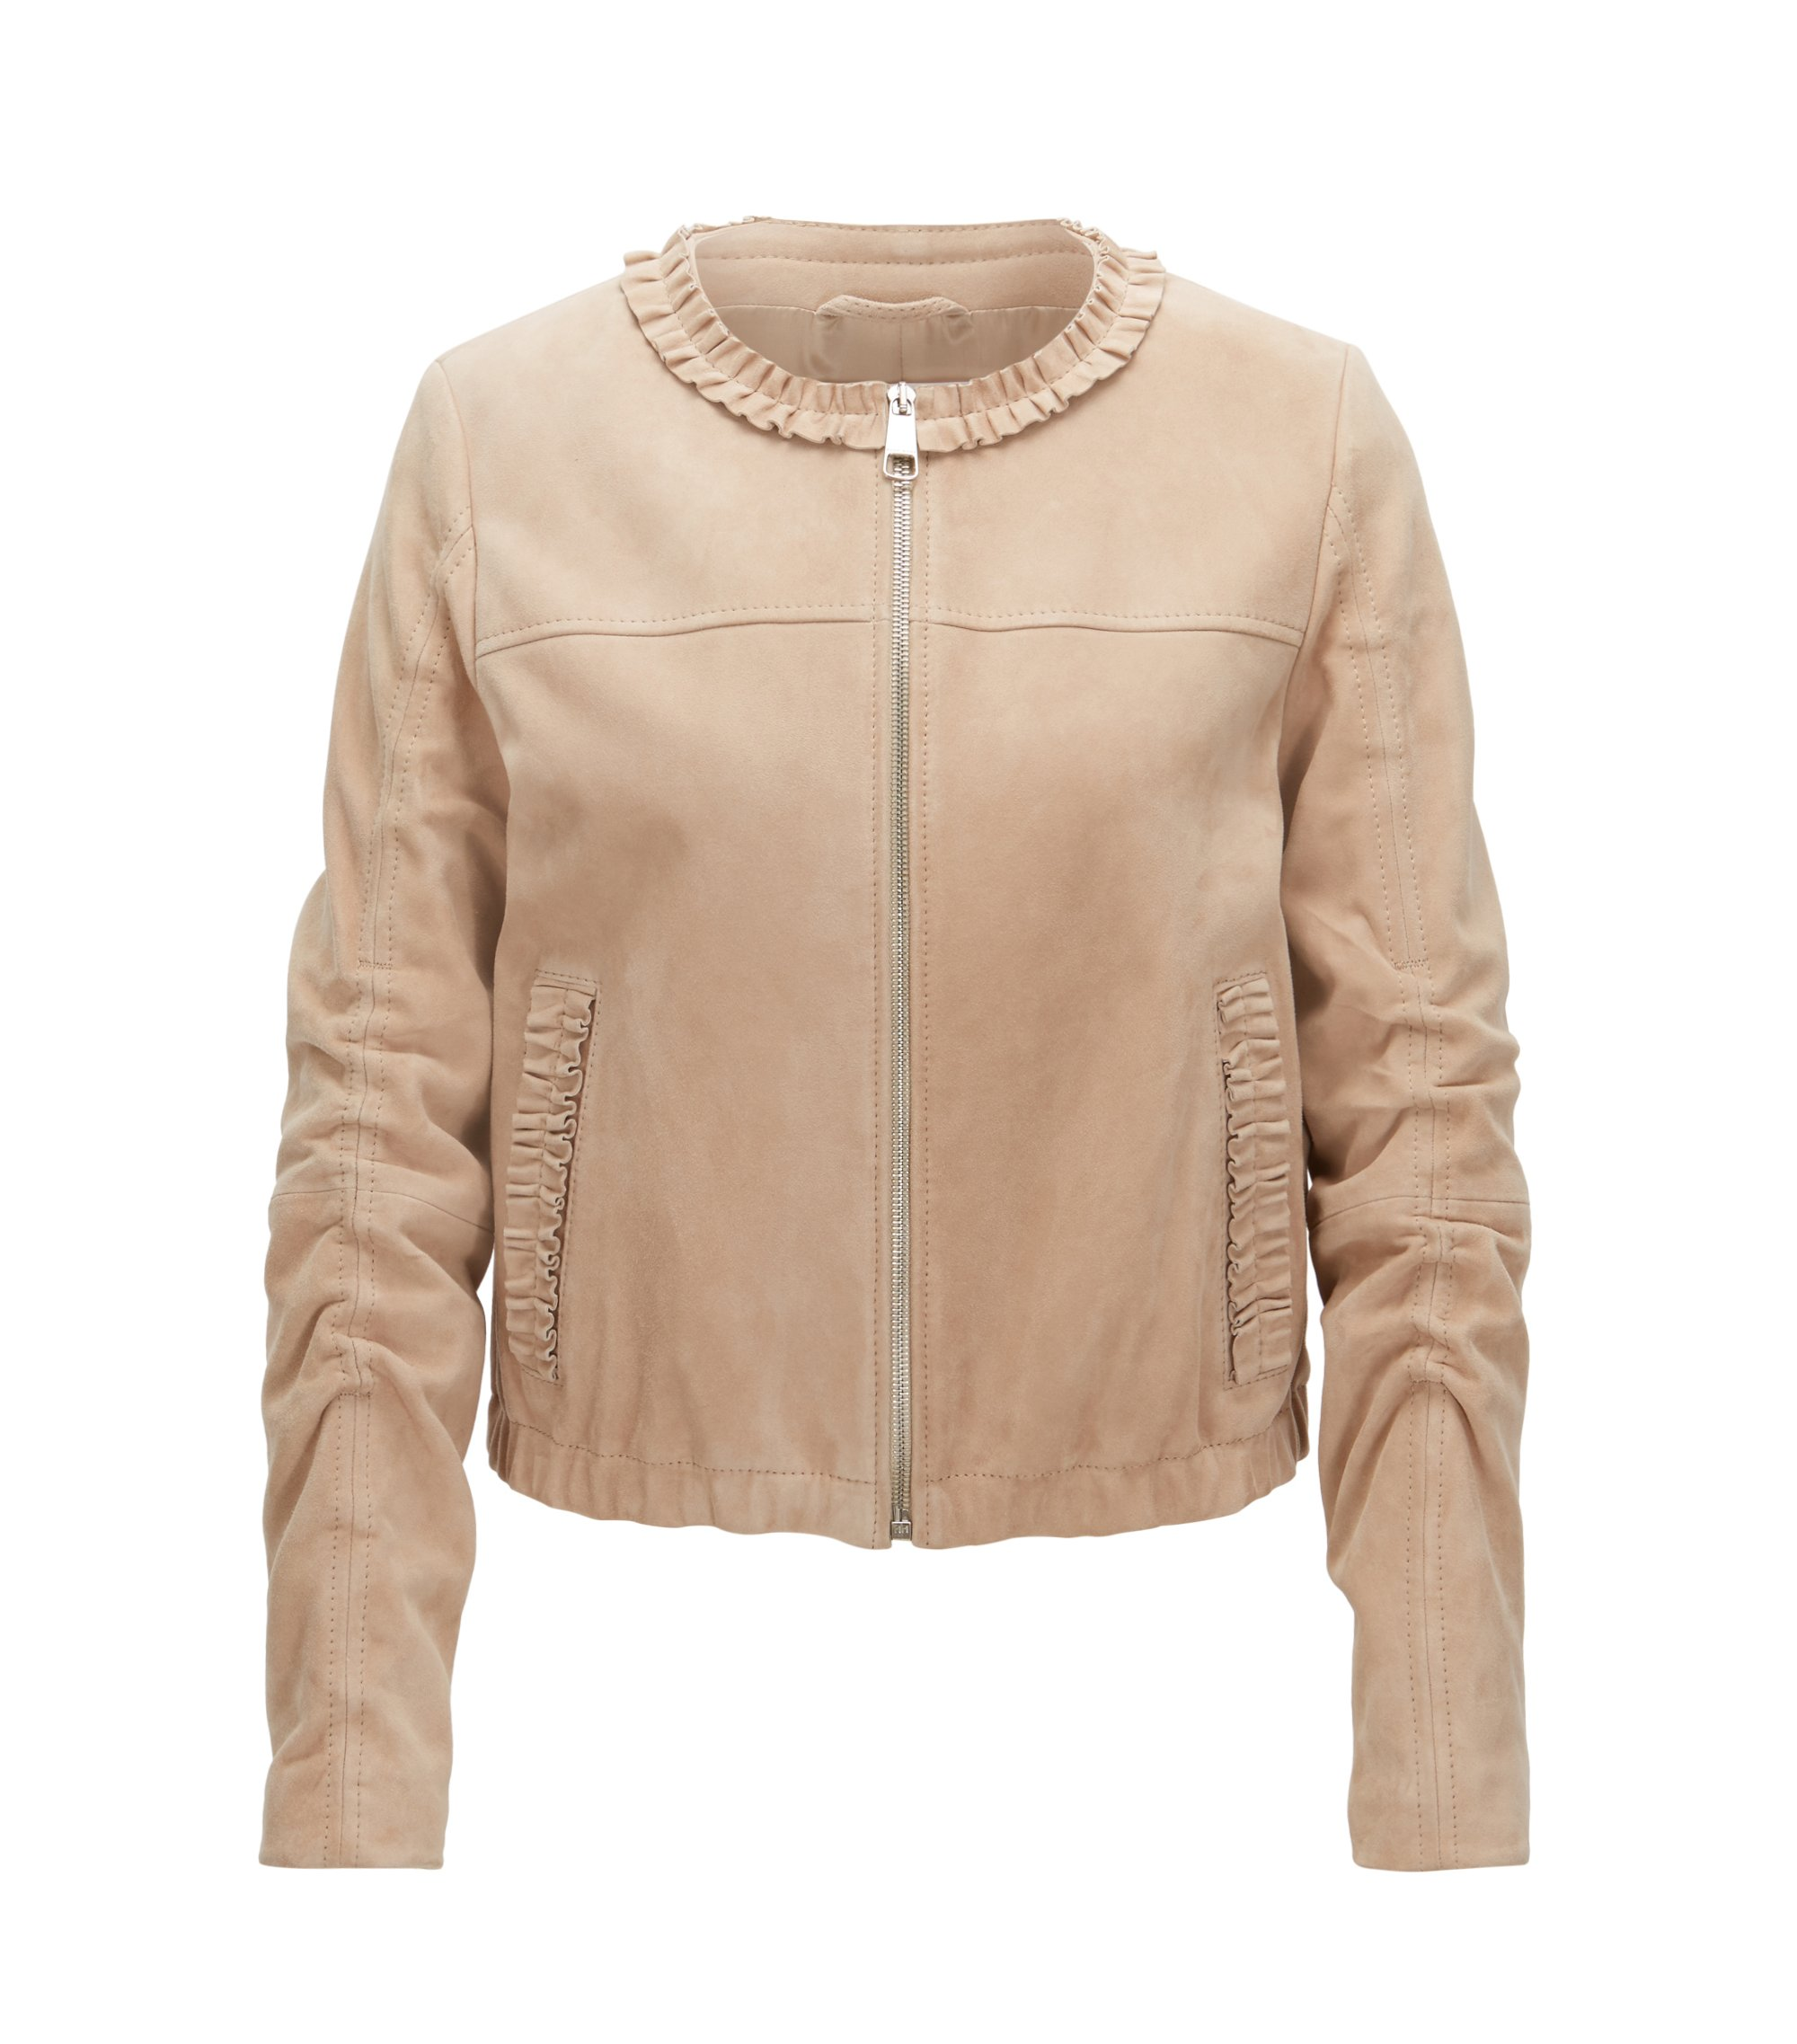 Ruffled Suede Leather Jacket | Sakrone, Beige